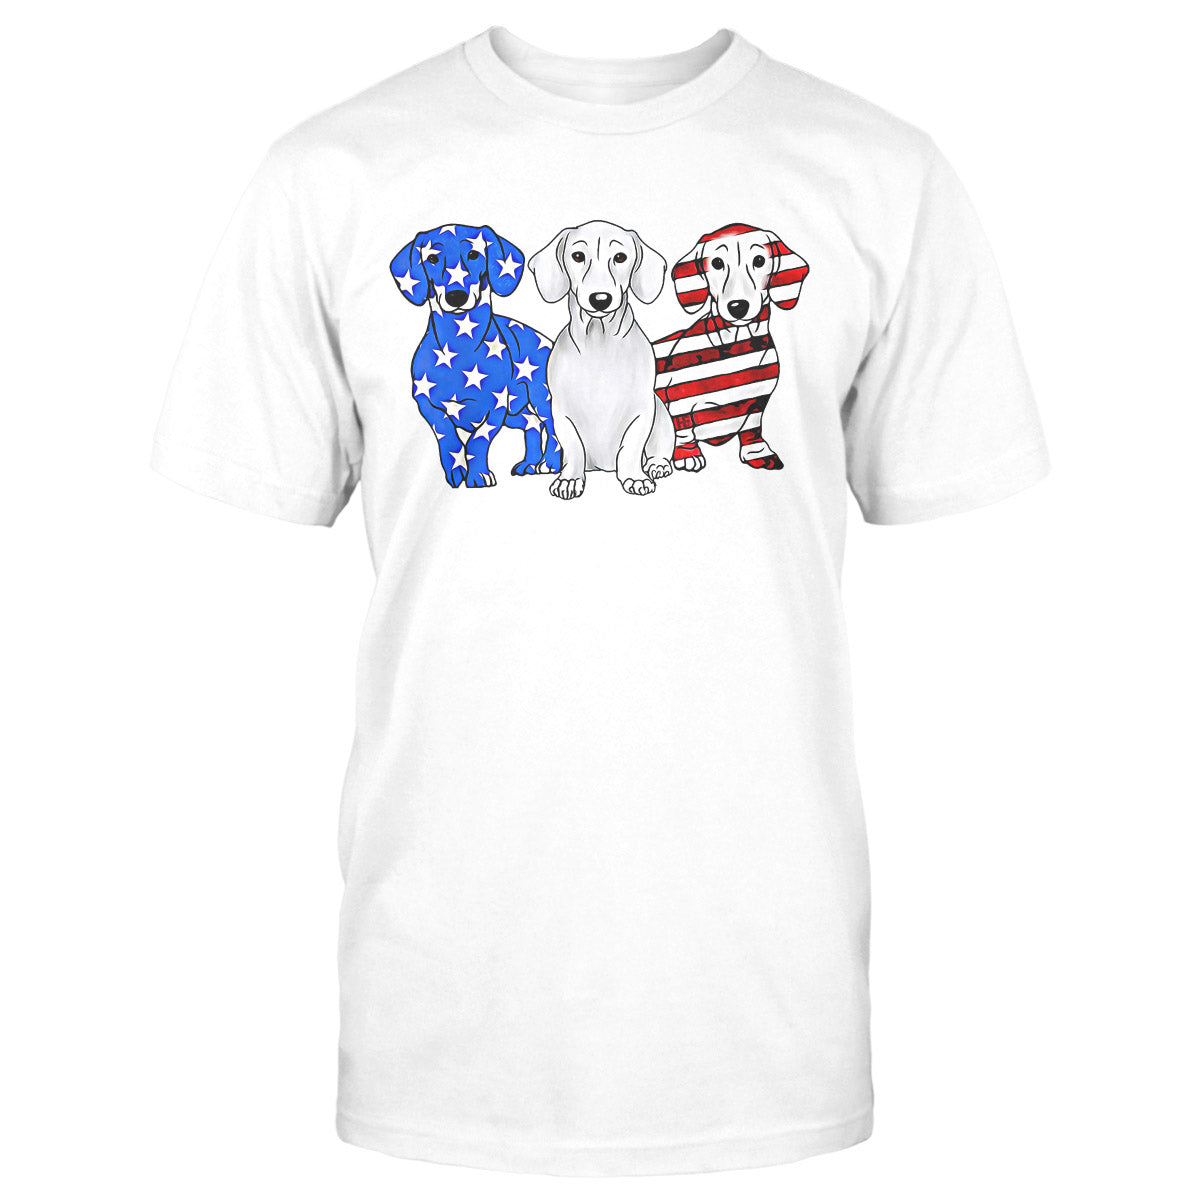 Dachshund Lovers Shirt 06 EZ01 1009 Classic T-shirt